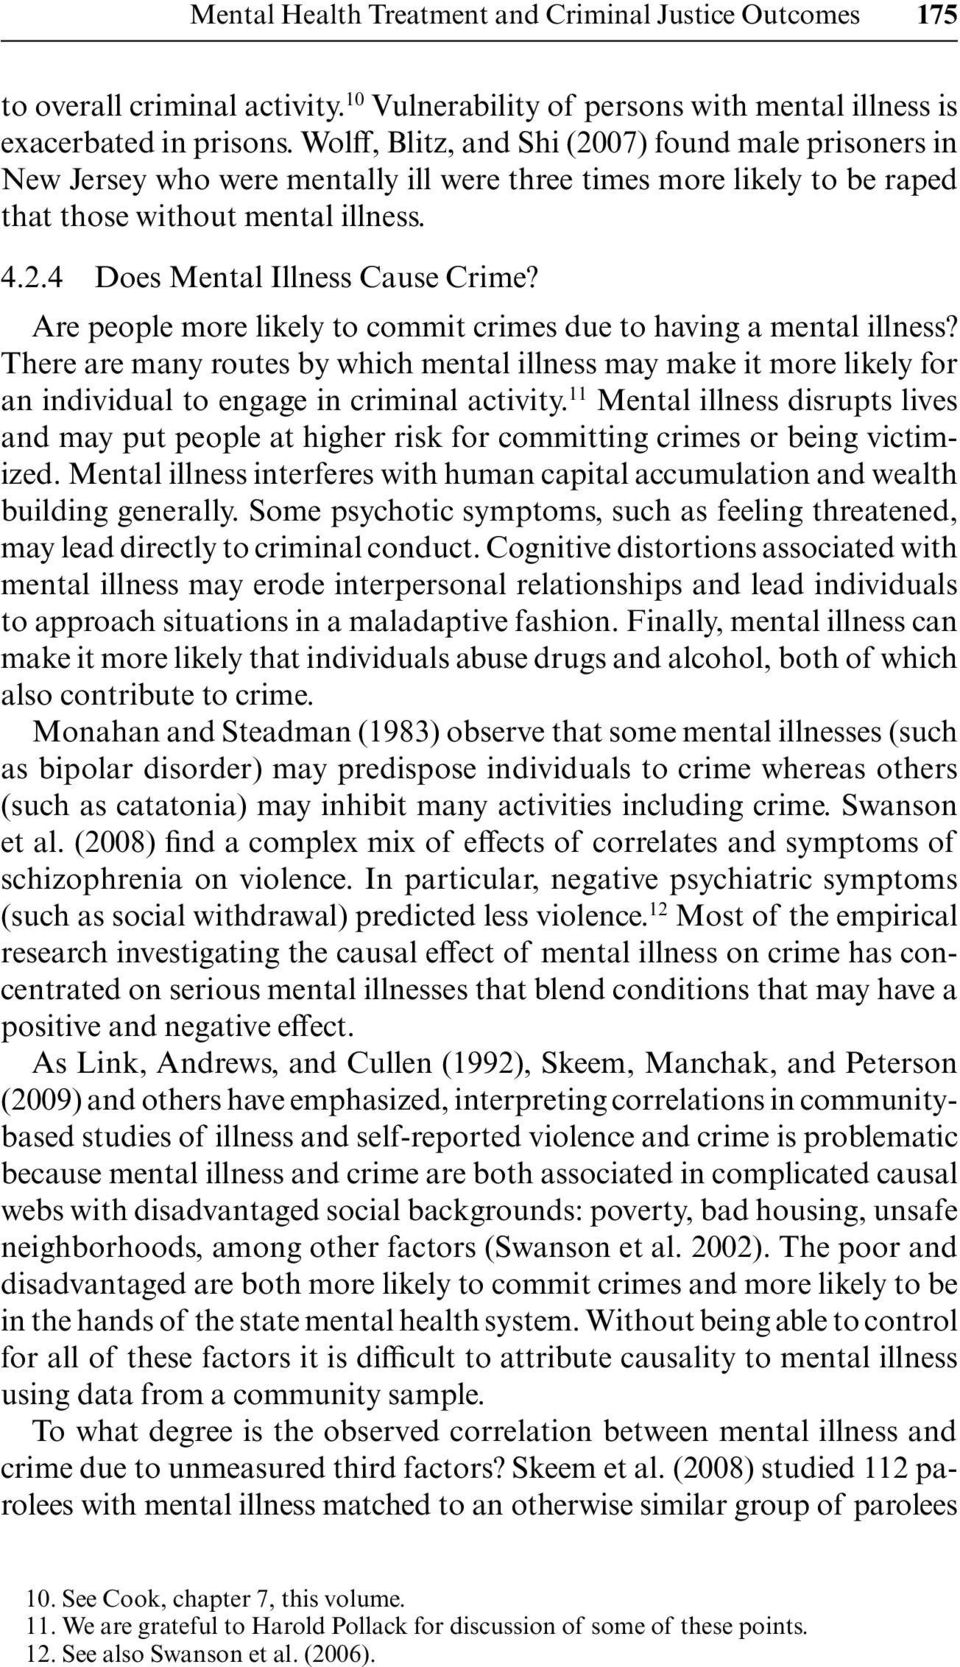 Are people more likely to commit crimes due to having a mental illness? There are many routes by which mental illness may make it more likely for an individual to engage in criminal activity.